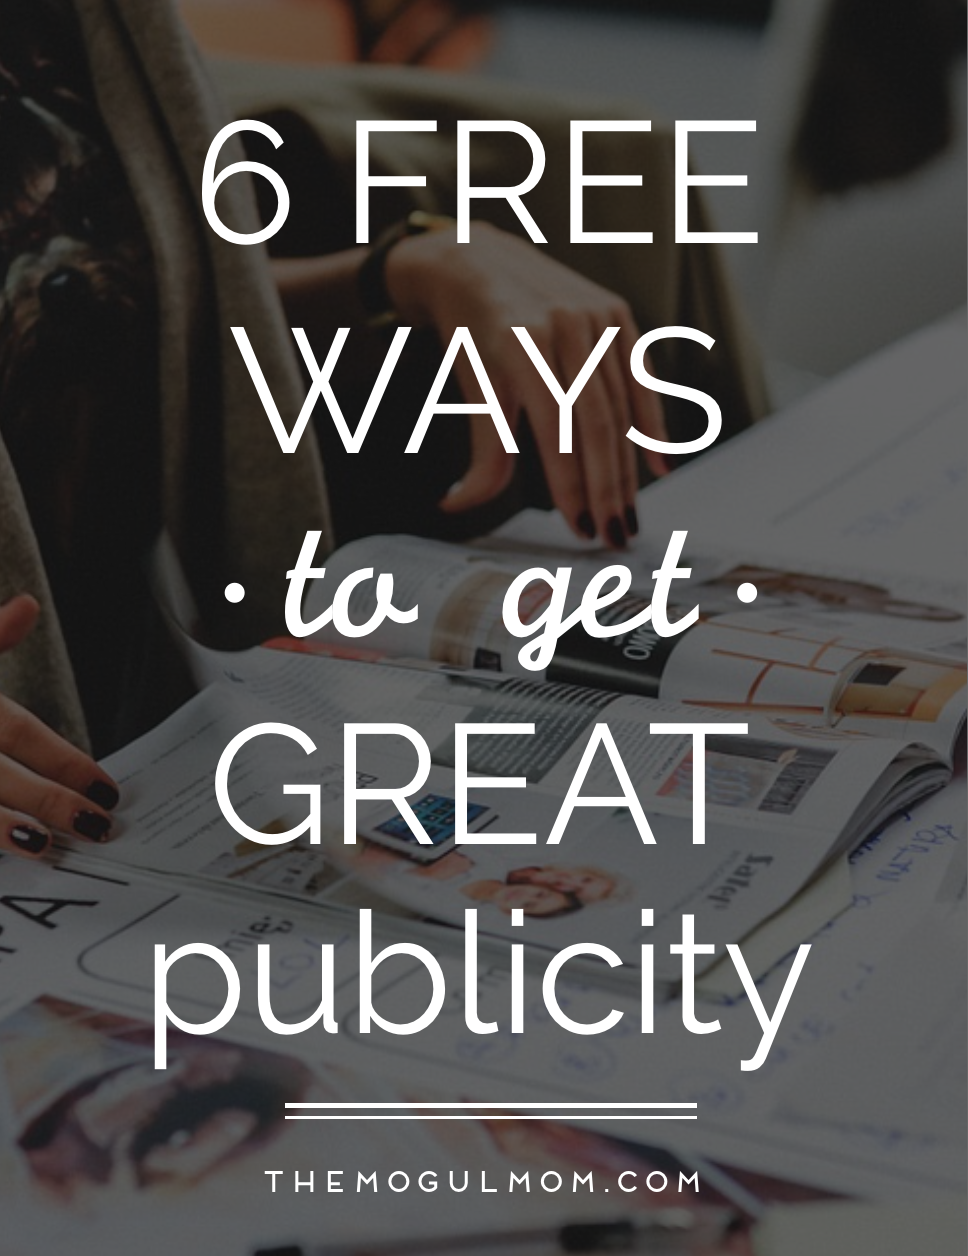 6 Free Ways To Get Great Publicity